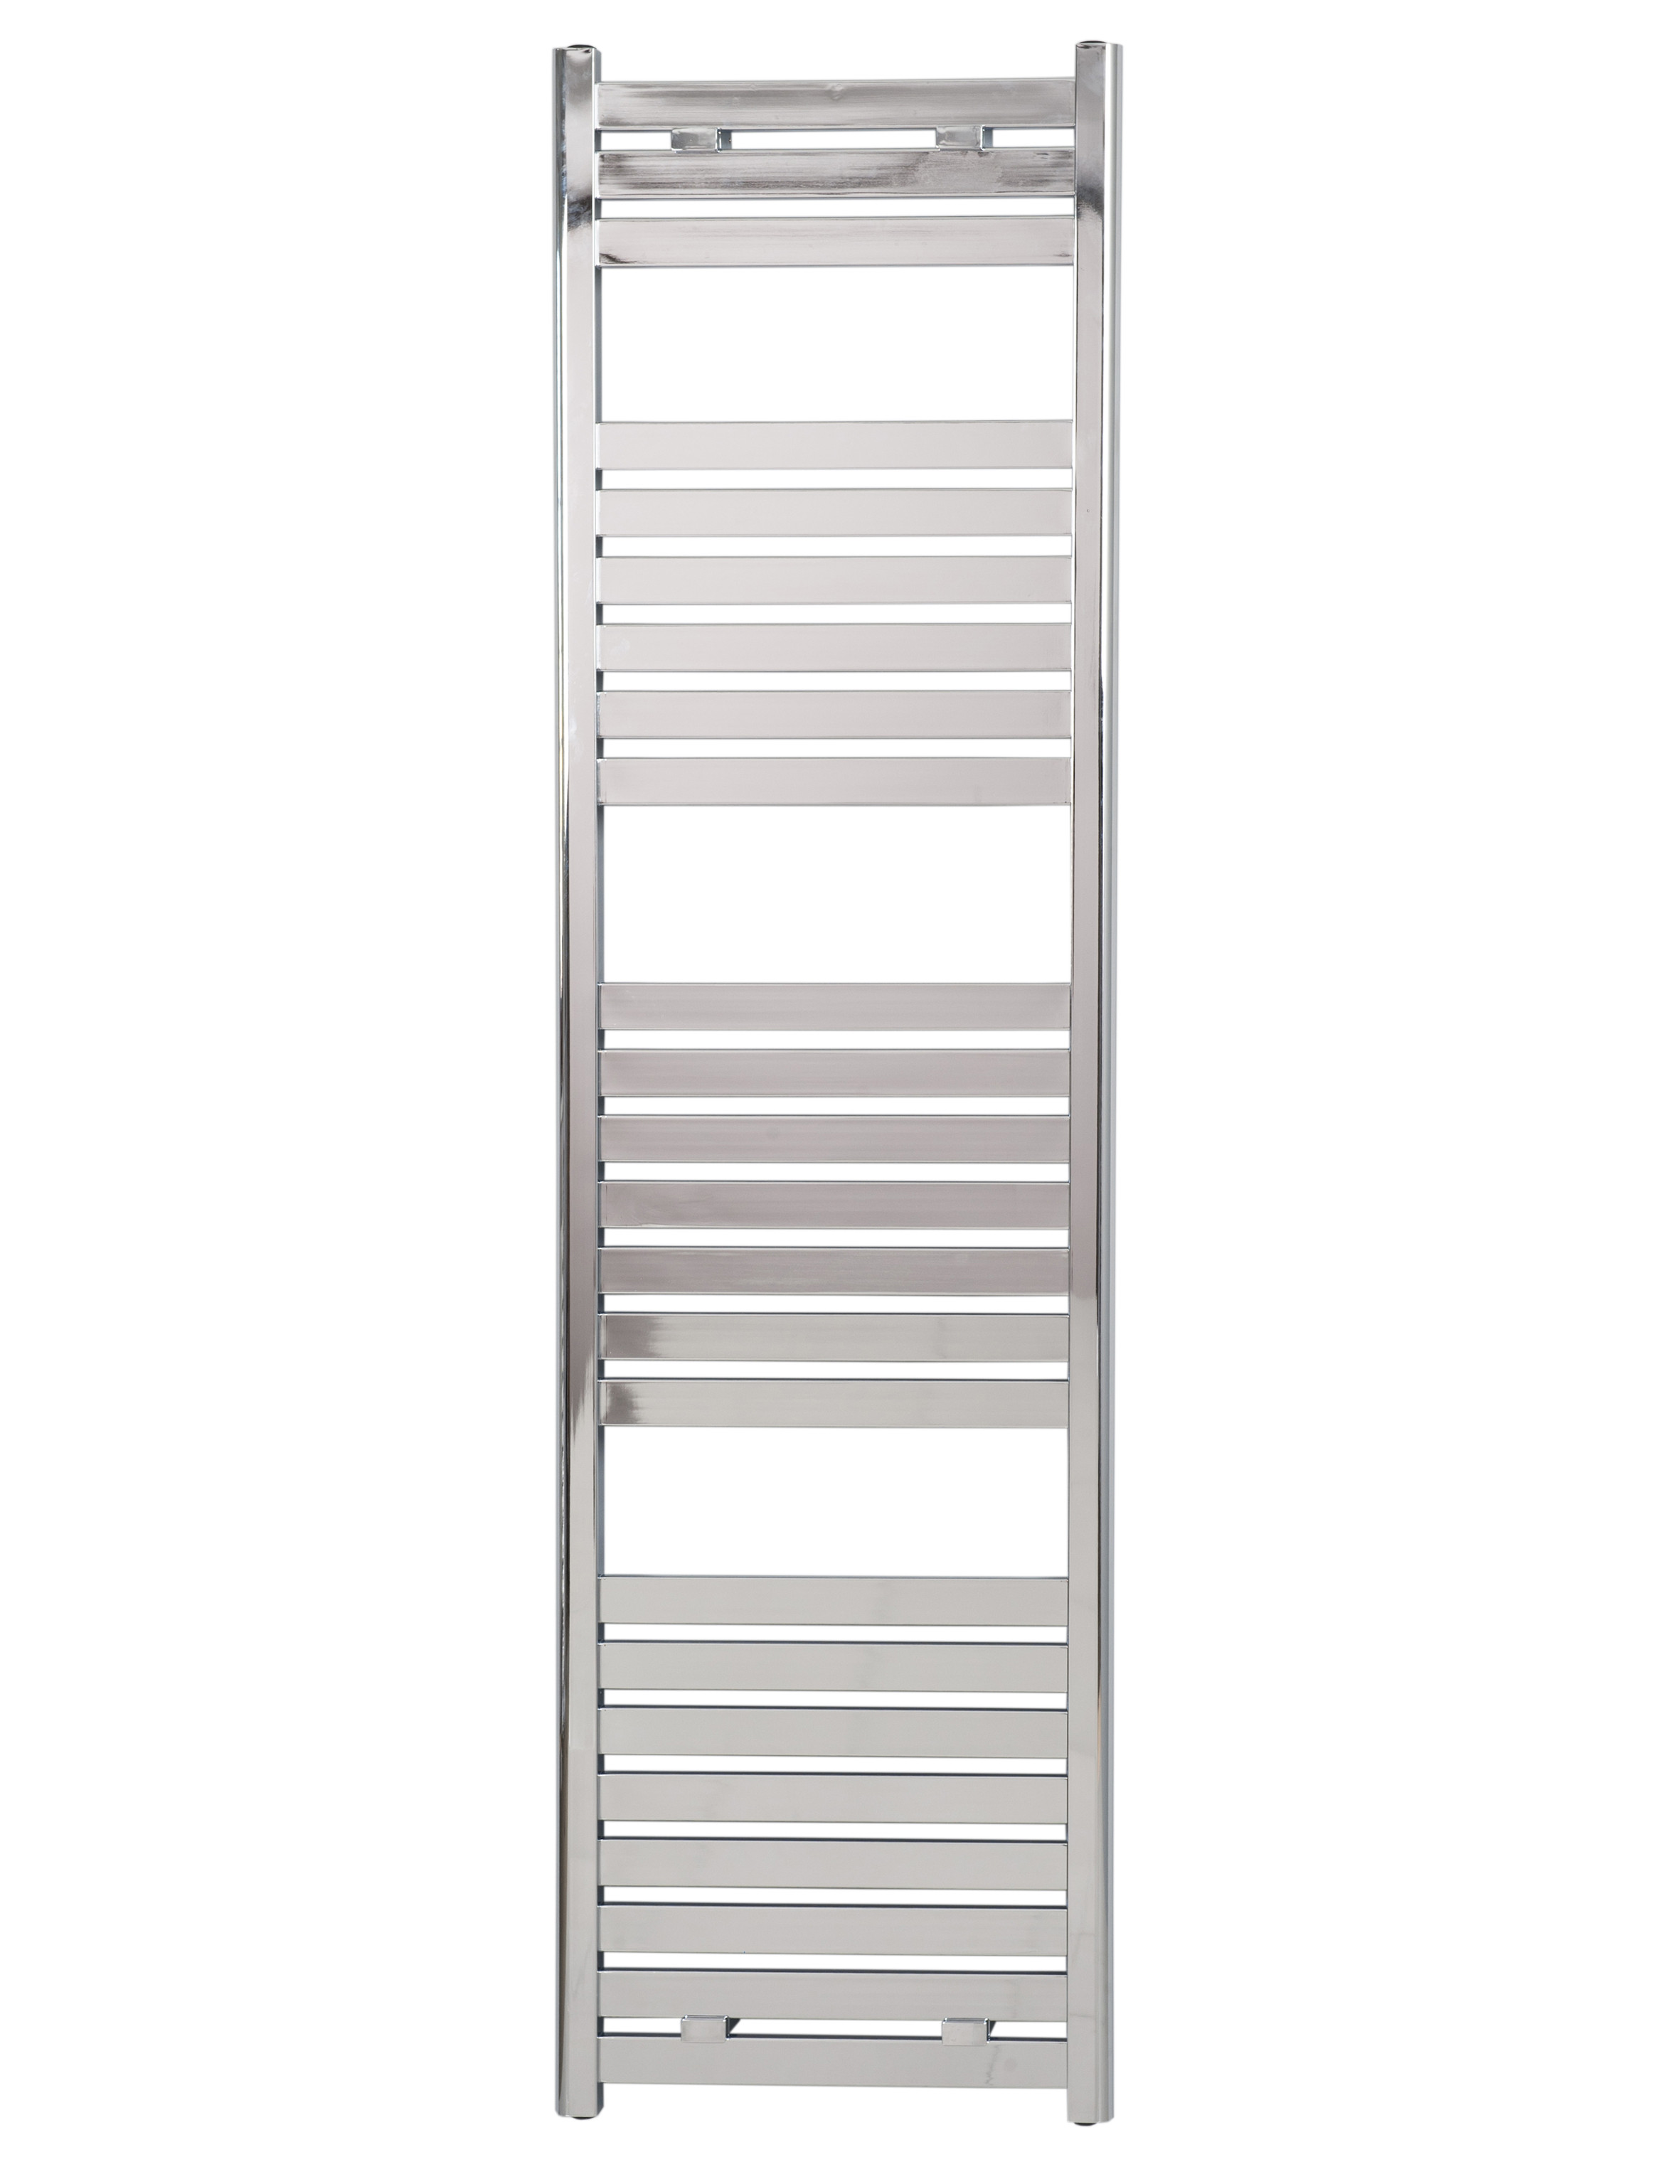 Cassini 1800 x 500 Chrome Heated Towel Rail